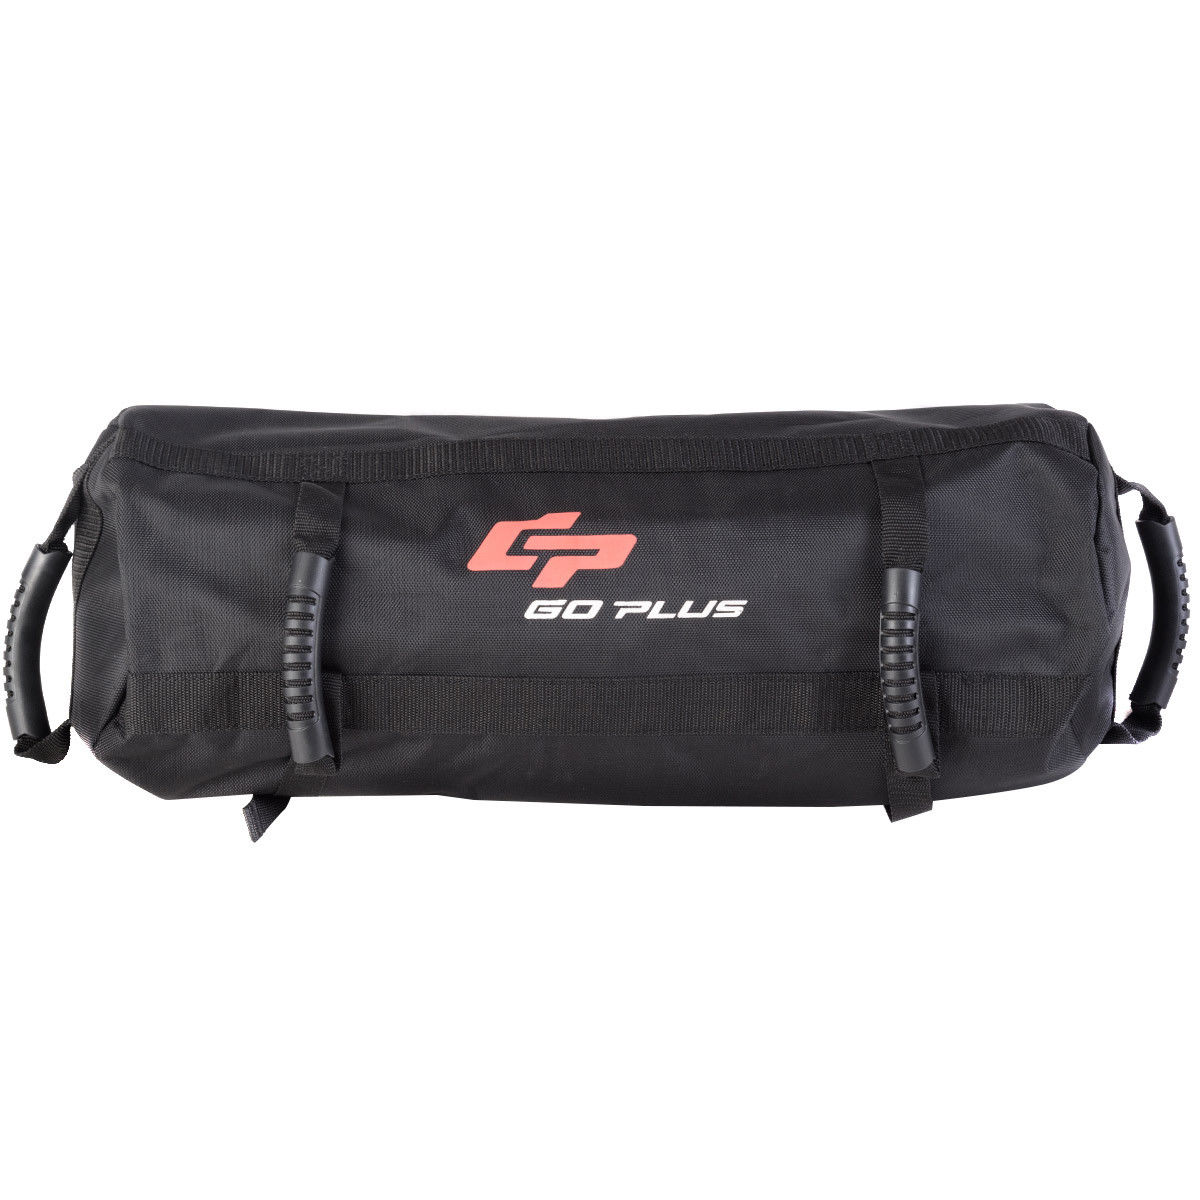 Durable 60lbs Body Press Weighted Sandbags w/ Filler Bags Fitness Exercise - image 3 de 5